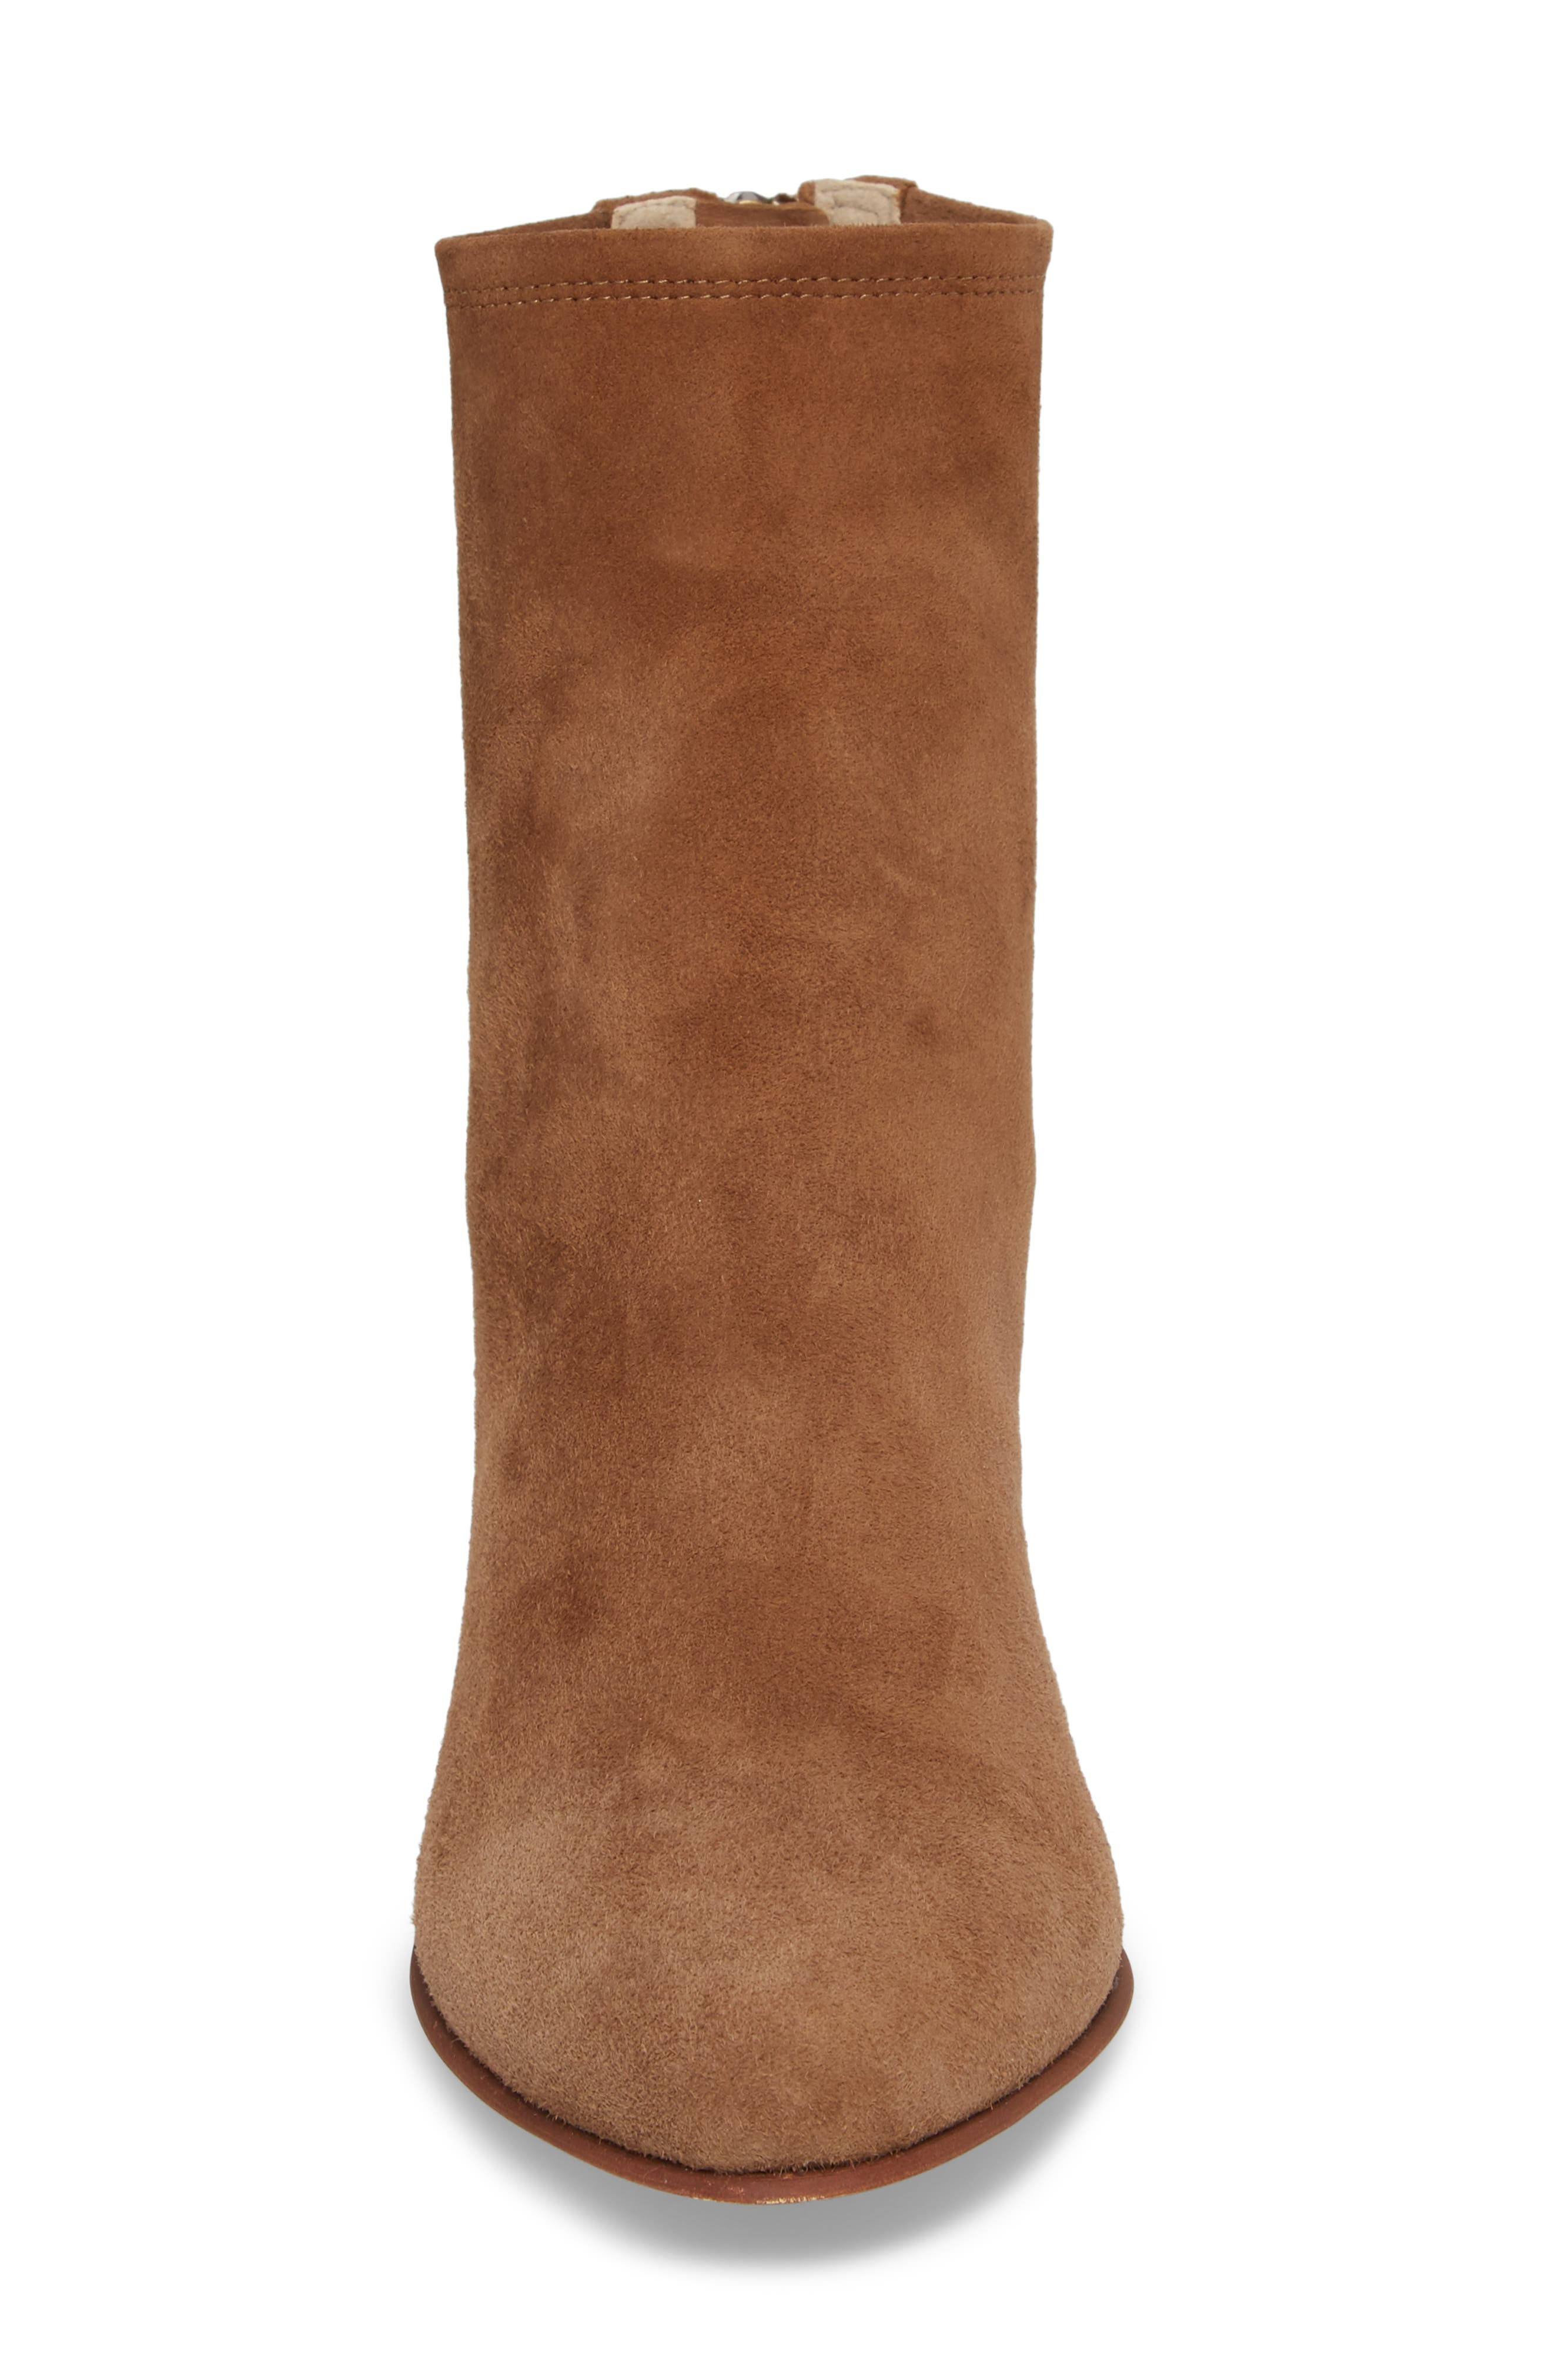 Tawny Bootie,                             Alternate thumbnail 4, color,                             Khaki Suede